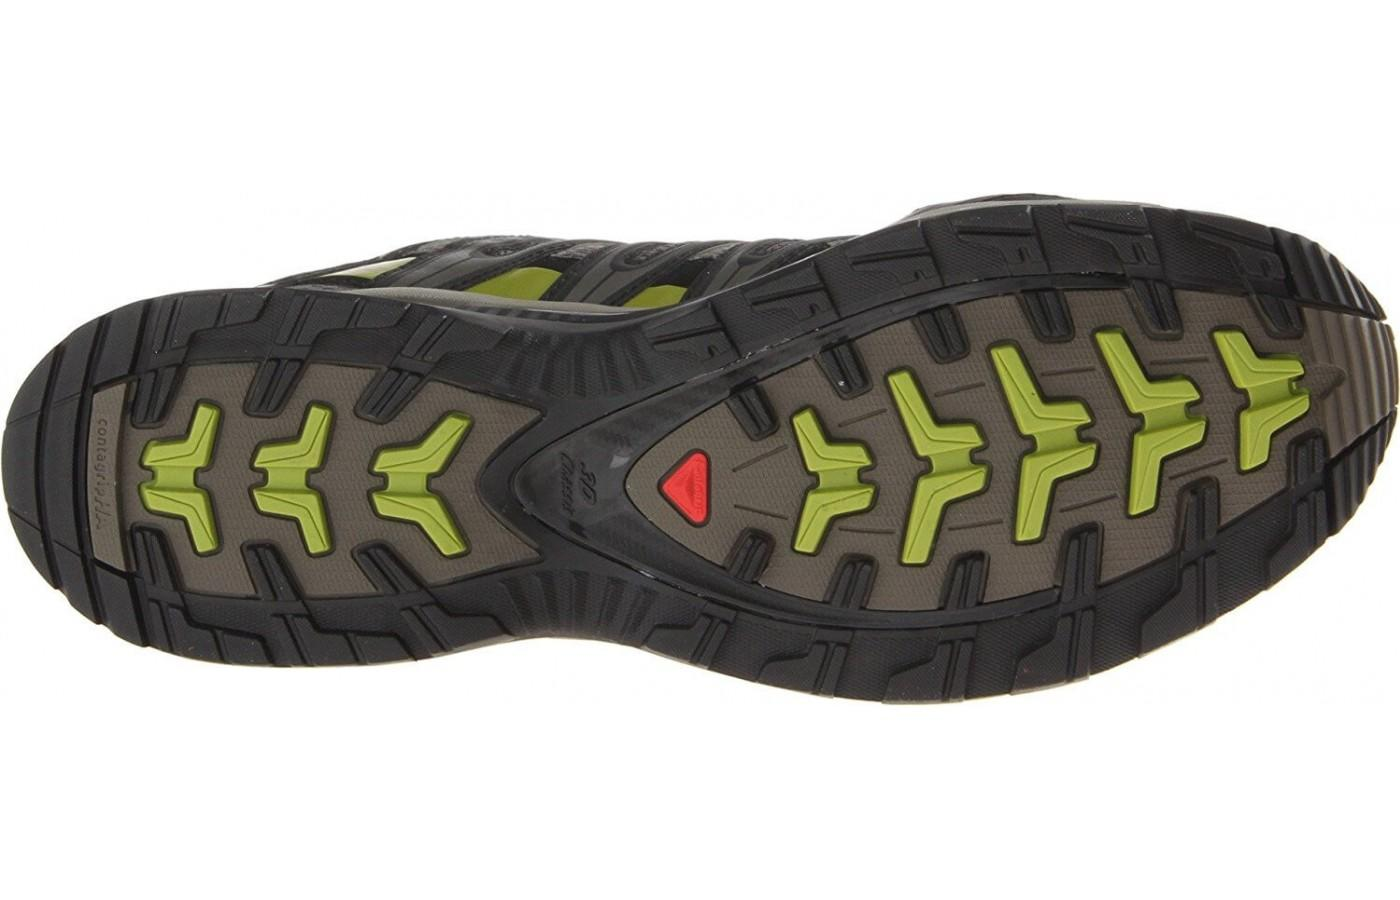 The outsole of the Salomon Xa Pro 3D M+ was designed to go on every type of terrain